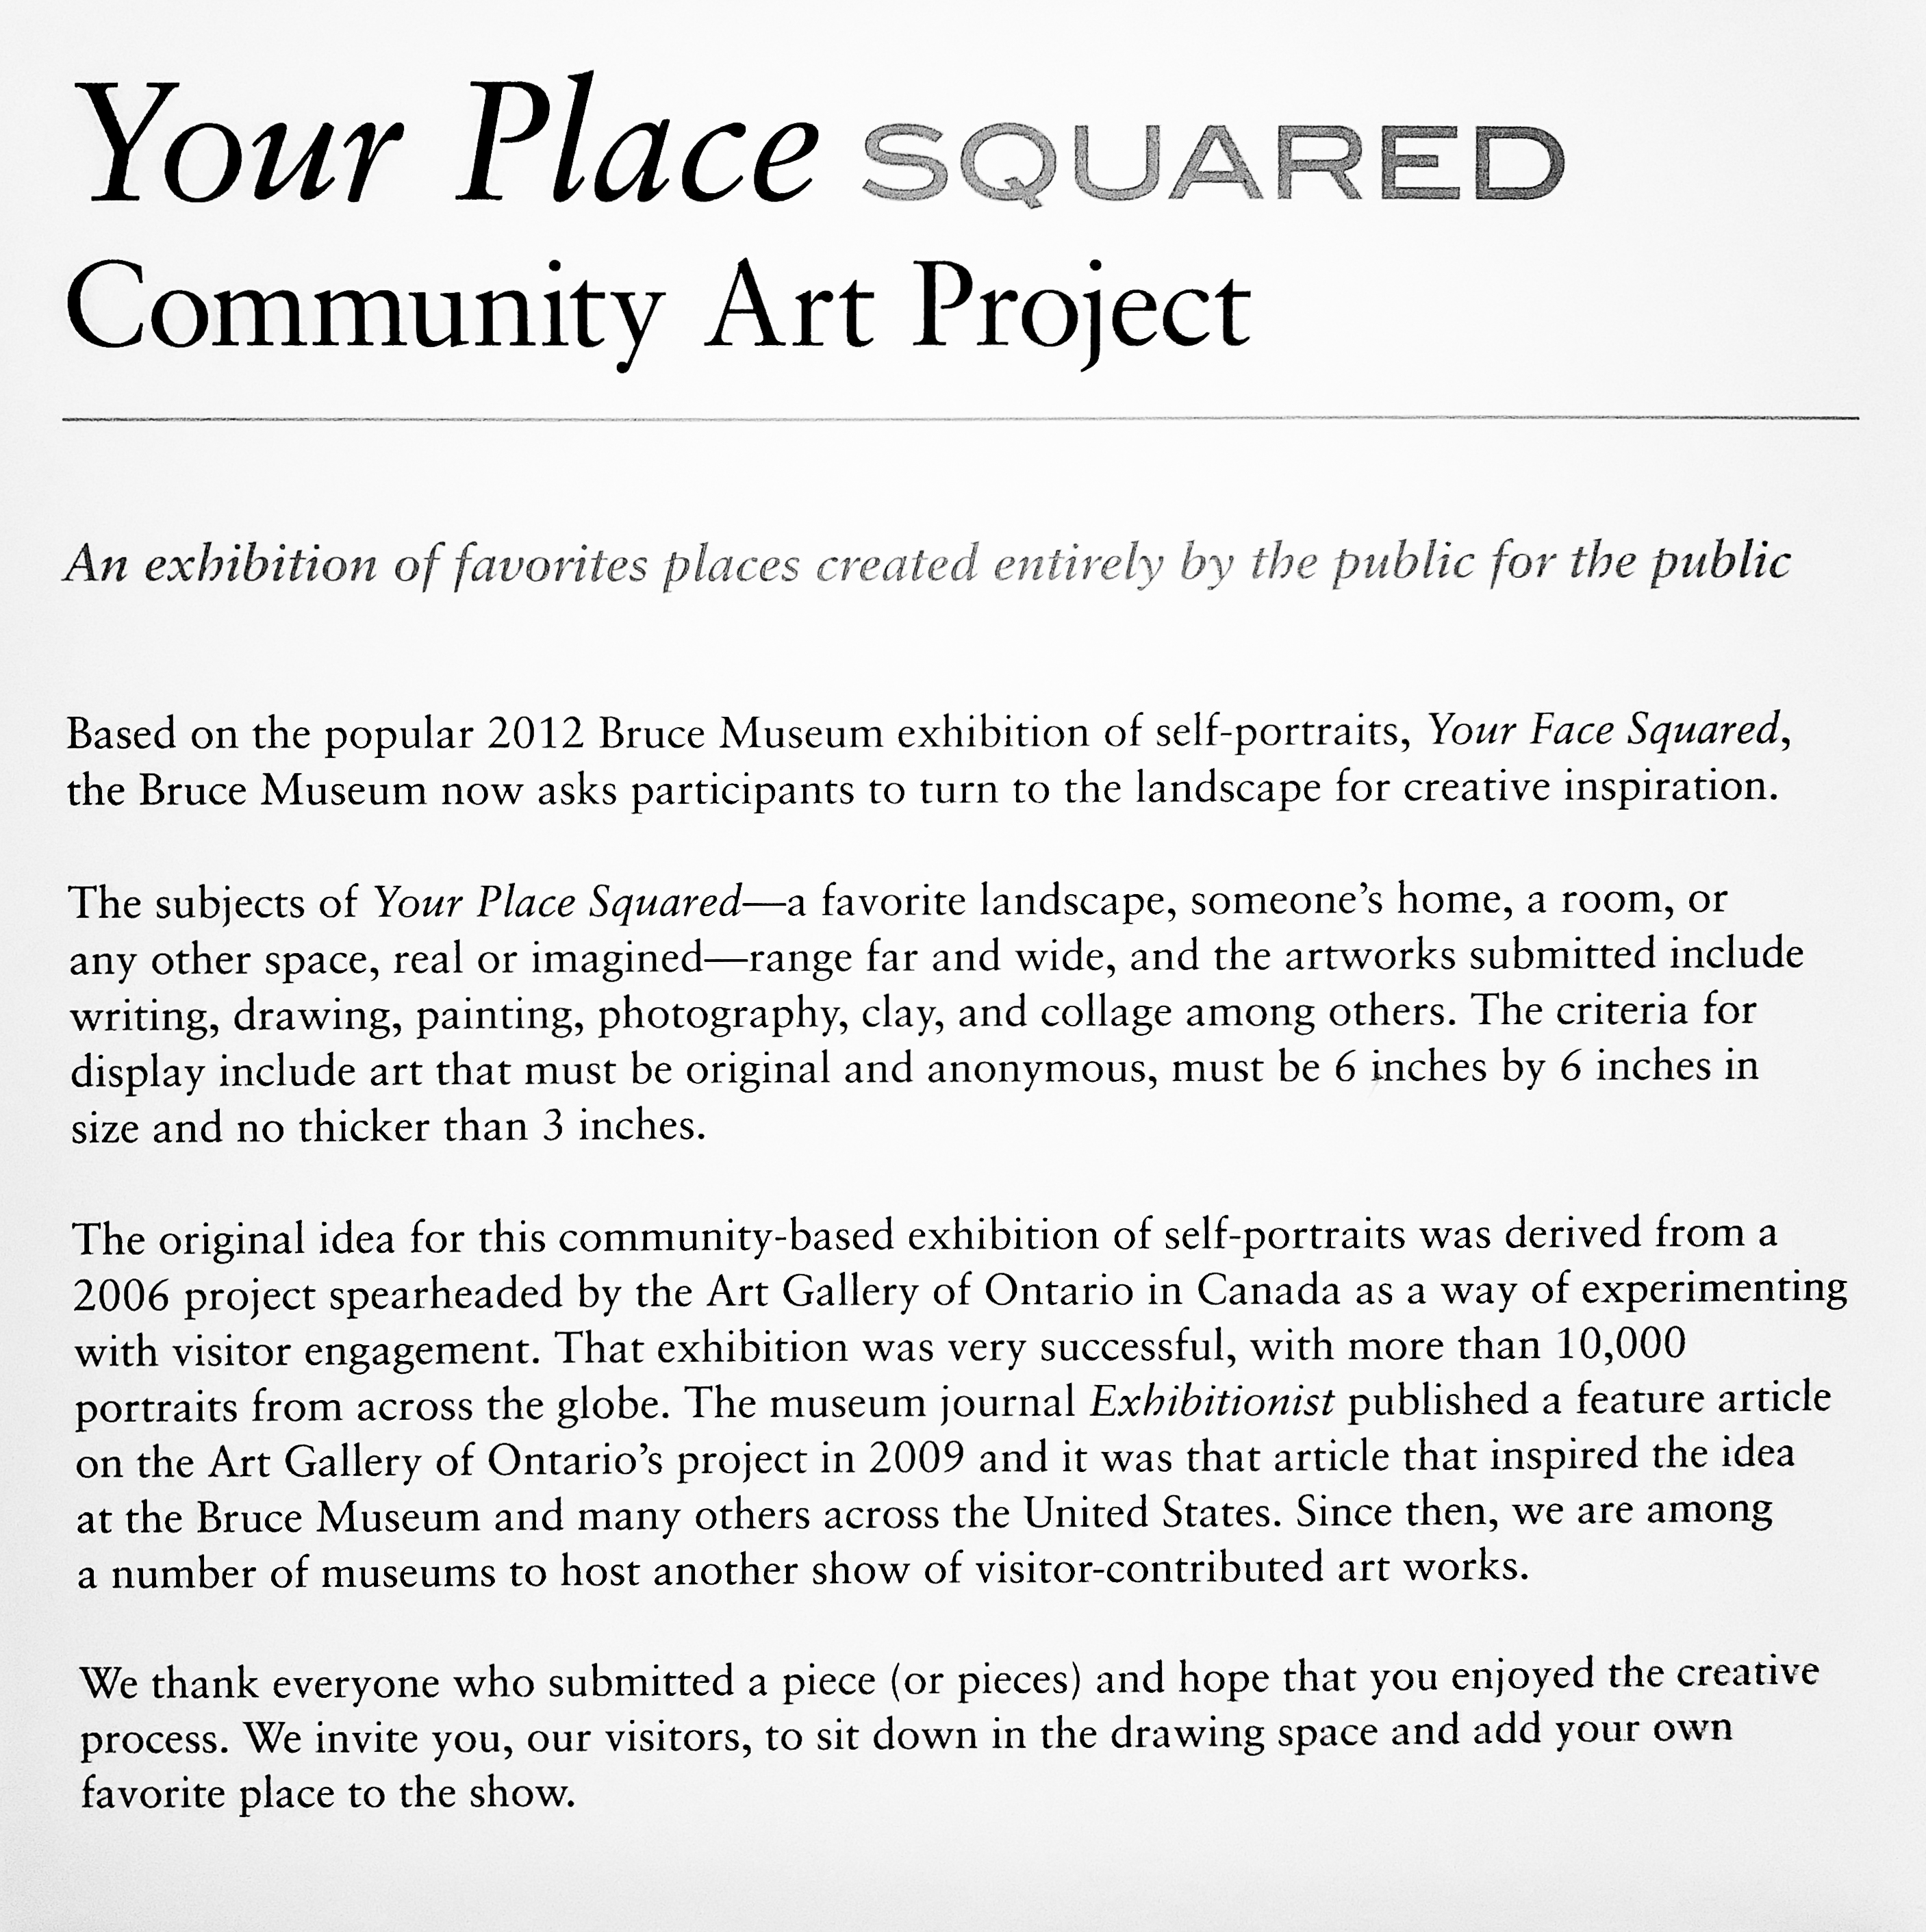 Your Place Squared